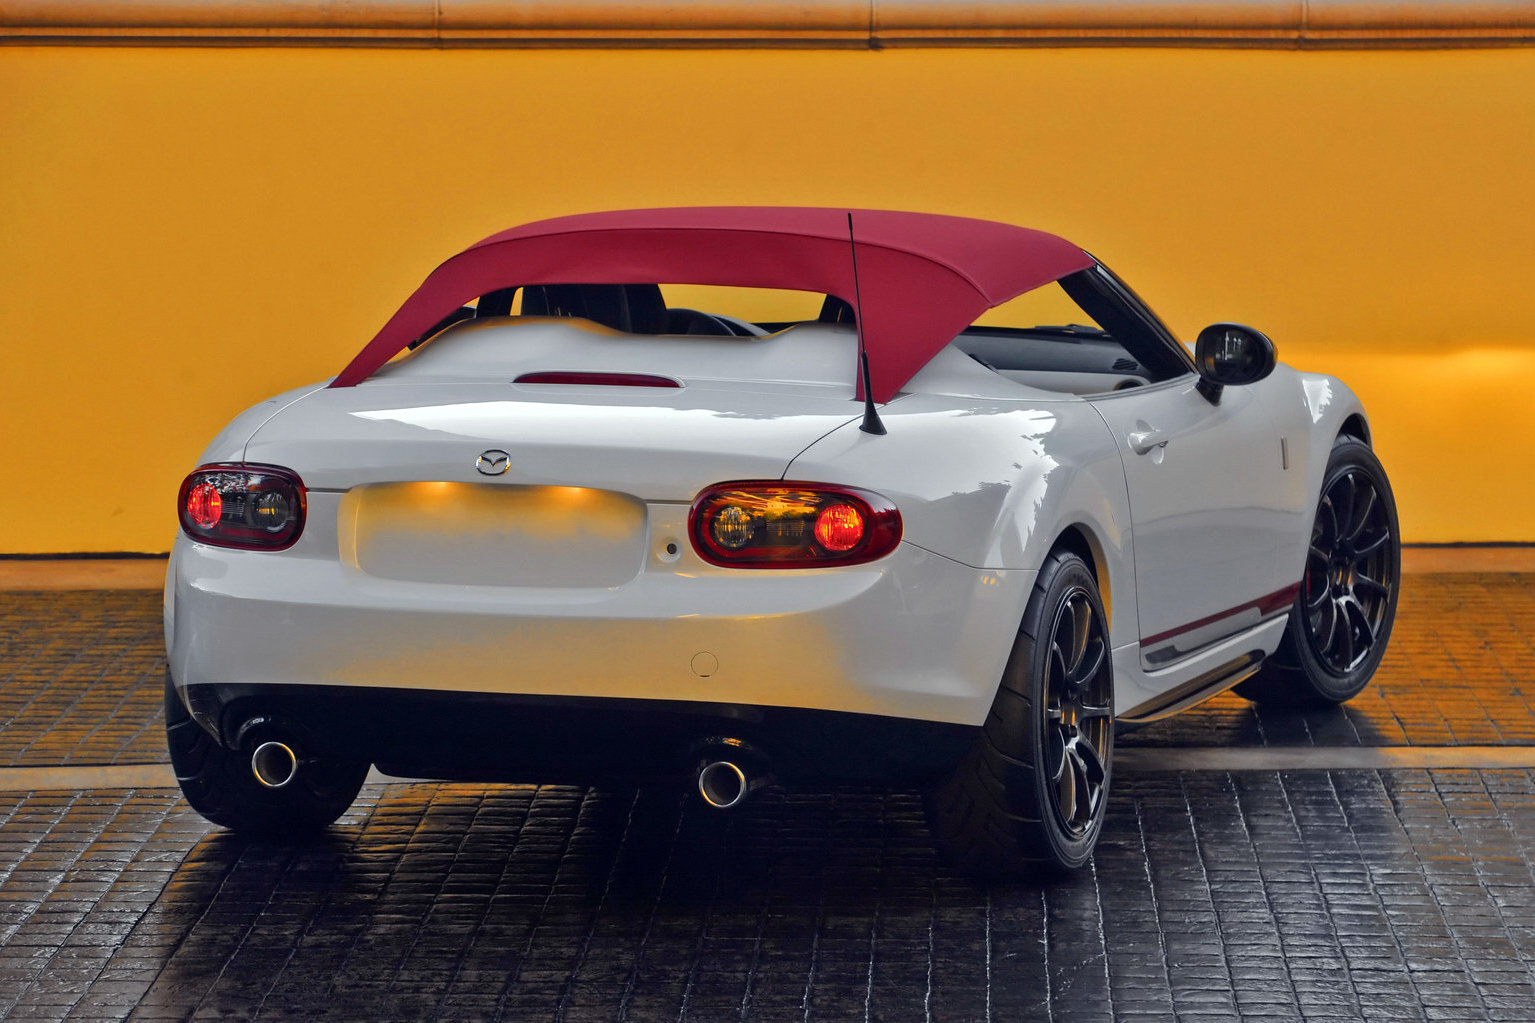 http://s1.cdn.autoevolution.com/images/news/gallery/mazda-mx-5-spyder-debuts-at-2011-sema-photo-gallery_2.jpg